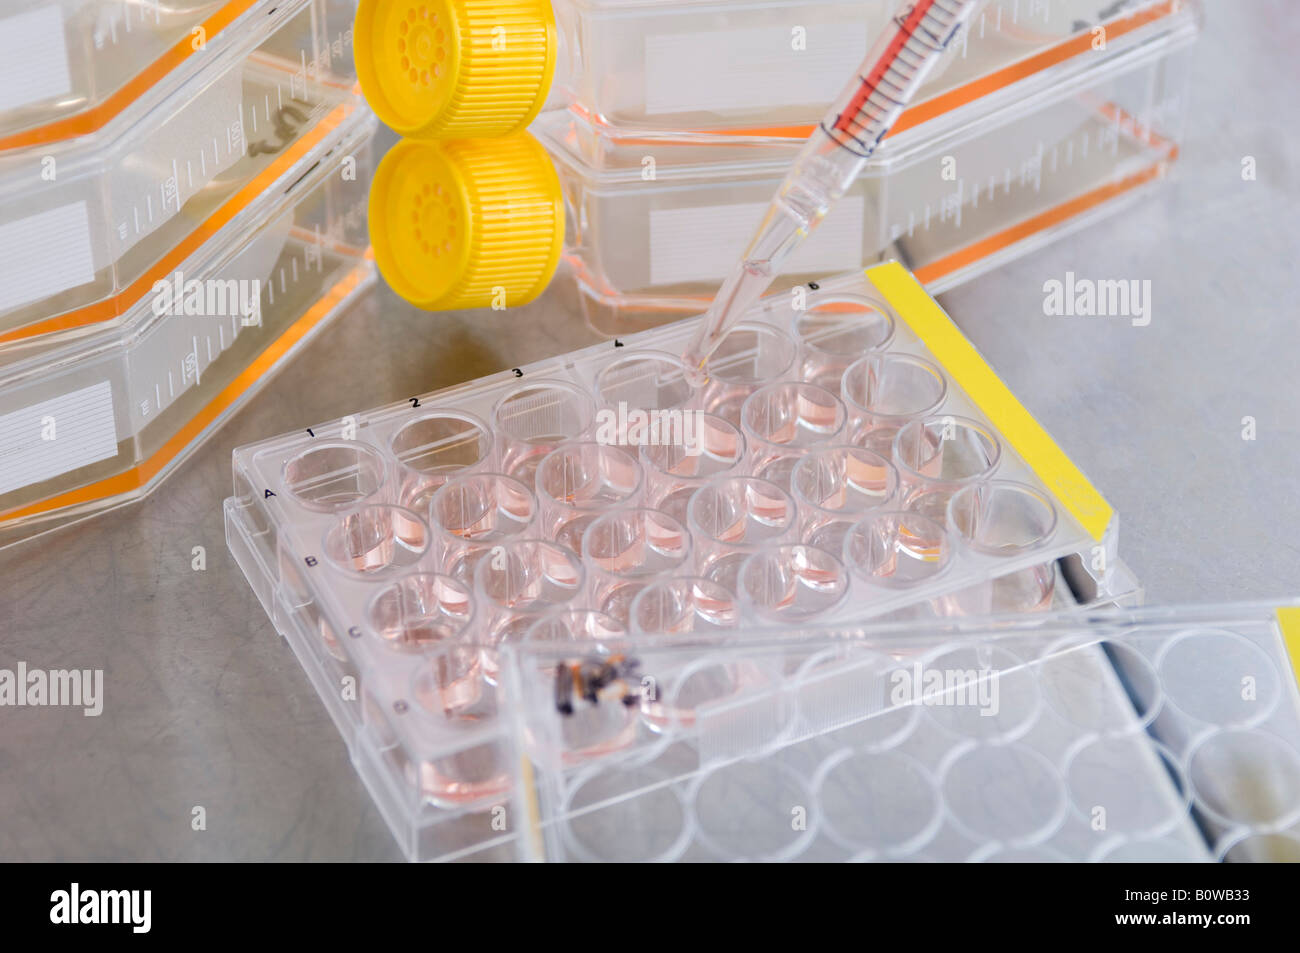 Stem cell research, Max Planck Institute for Molecular Genetics, scientist, stem-cell cultures, Berlin, Germany - Stock Image